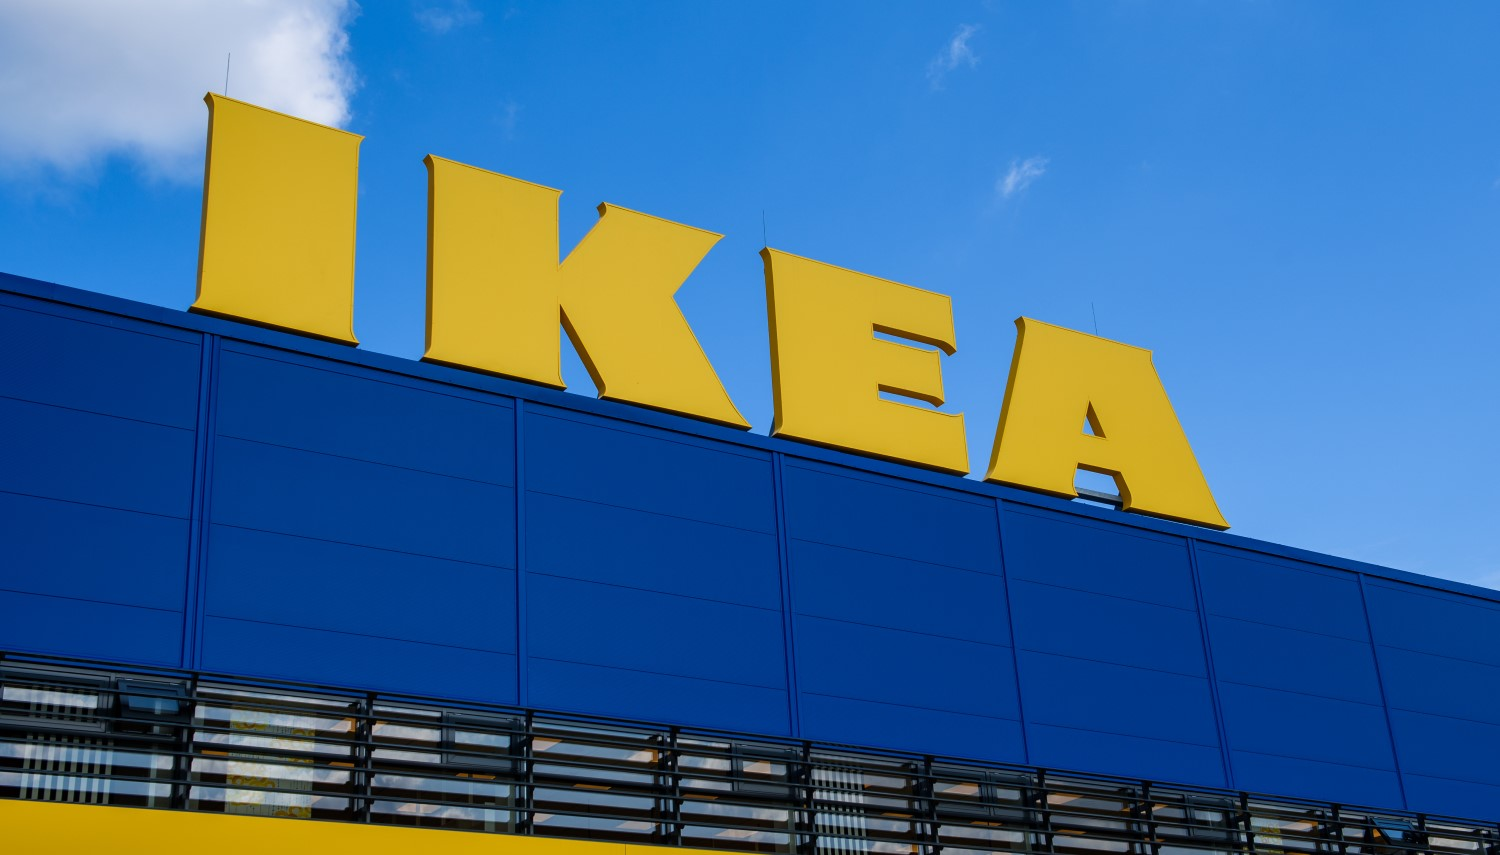 IKEA in 'World First' Transaction Using Smart Contracts and Licensed E-Money - CoinDesk